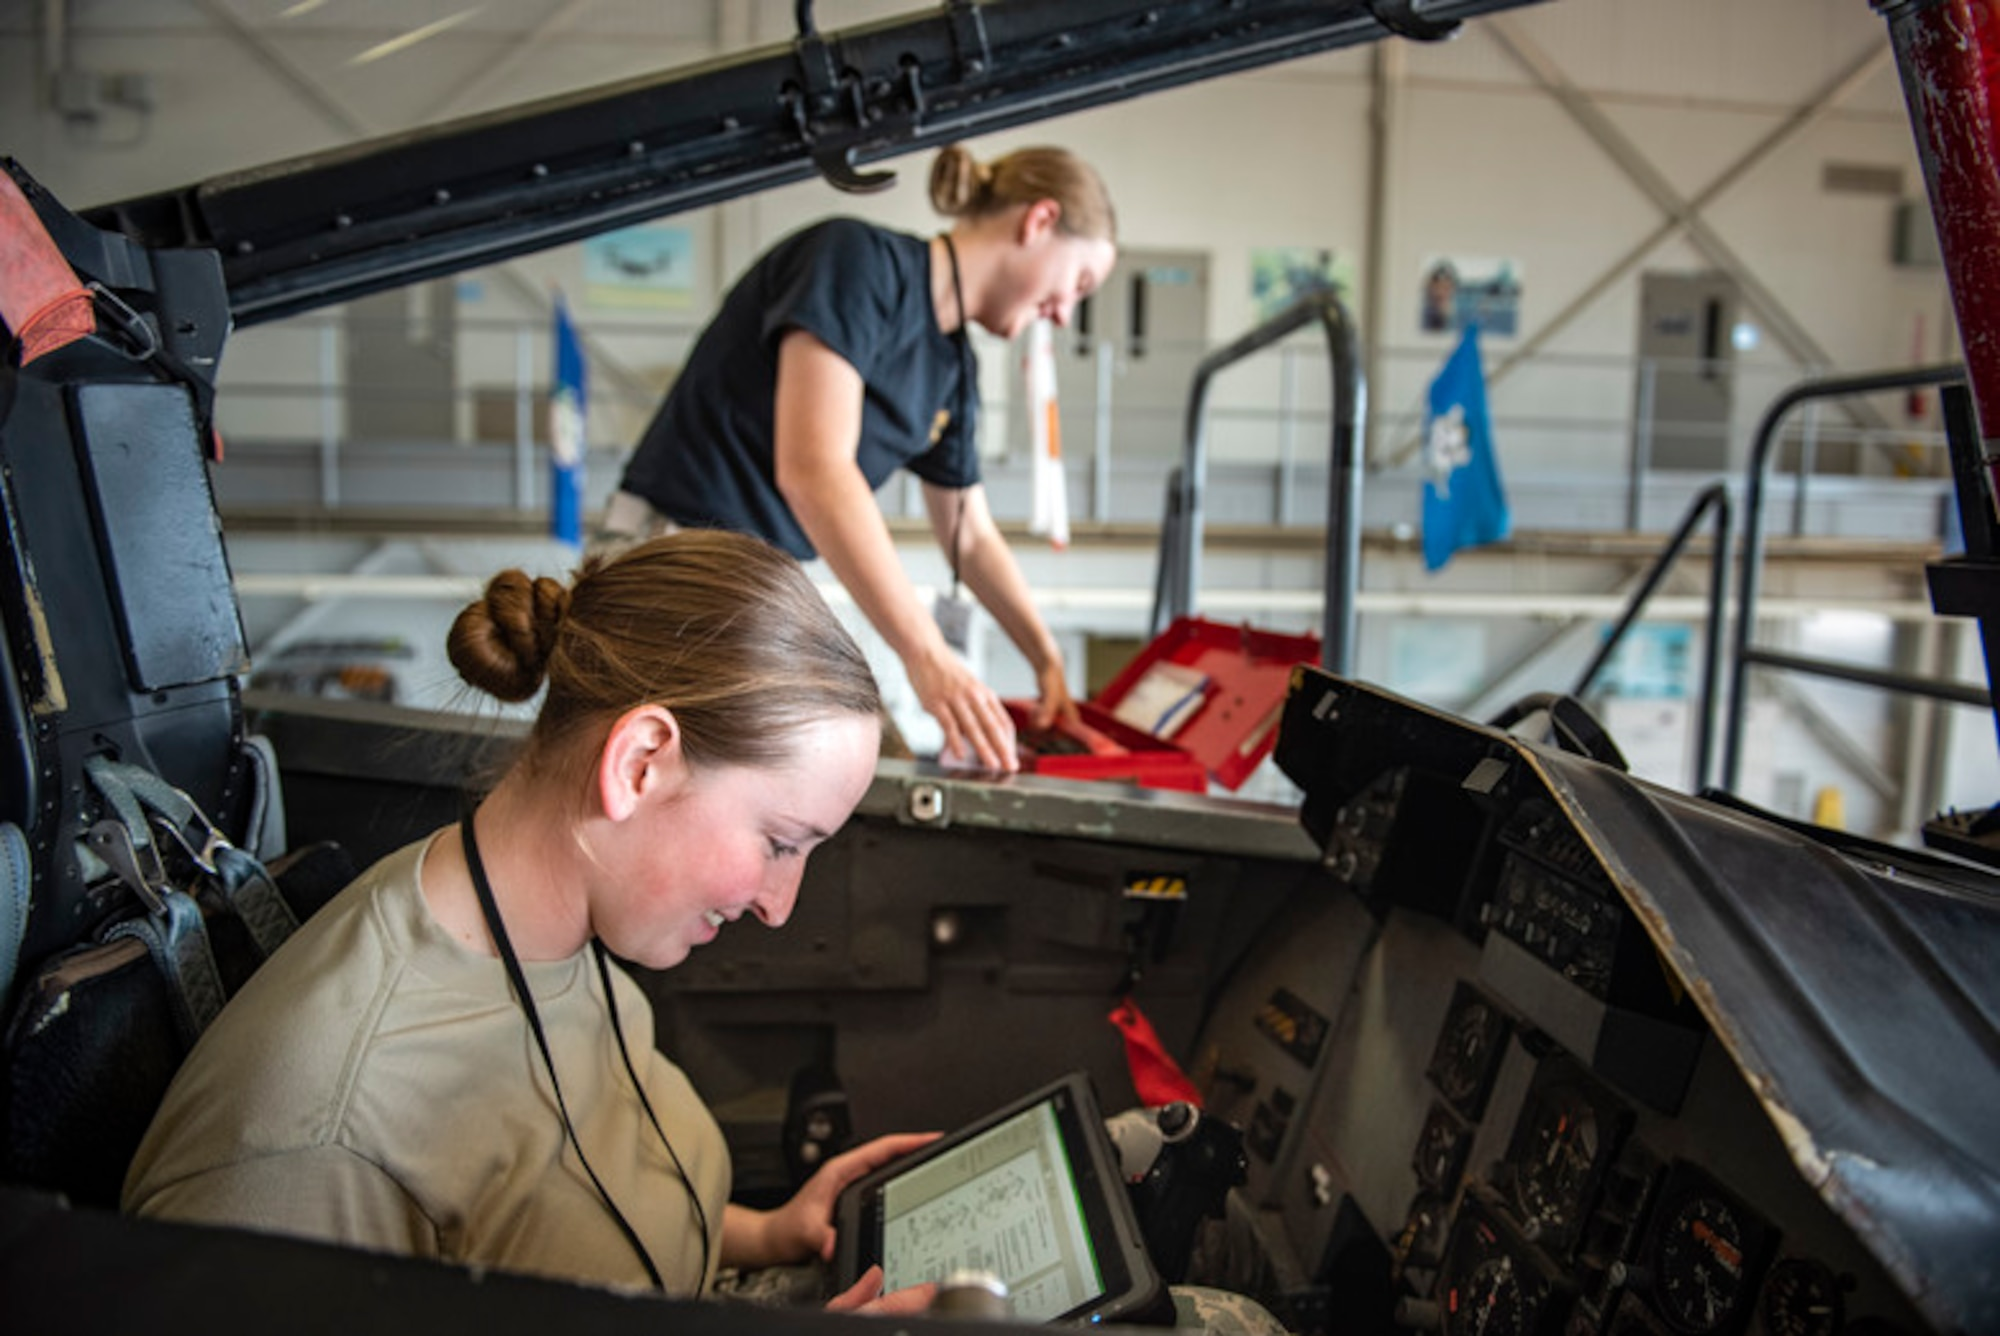 Airman 1st Class Christine Smith and Airman 1st Class Kaylie Cunningham, 364th Training Squadron electrical and environmental apprentice course students, remove and install an oxygen regulator on an F-15 Eagle at Sheppard Air Force Base, Texas, June 14, 2019. In an effort to expand learning opportunities for Airmen and enable training and education from any device, Air Education and Training Command has begun the Learning Wi-Fi Service project to install commercial wireless Internet across the command's installations. (U.S. Air Force photo by Airman 1st Class Pedro Tenorio)